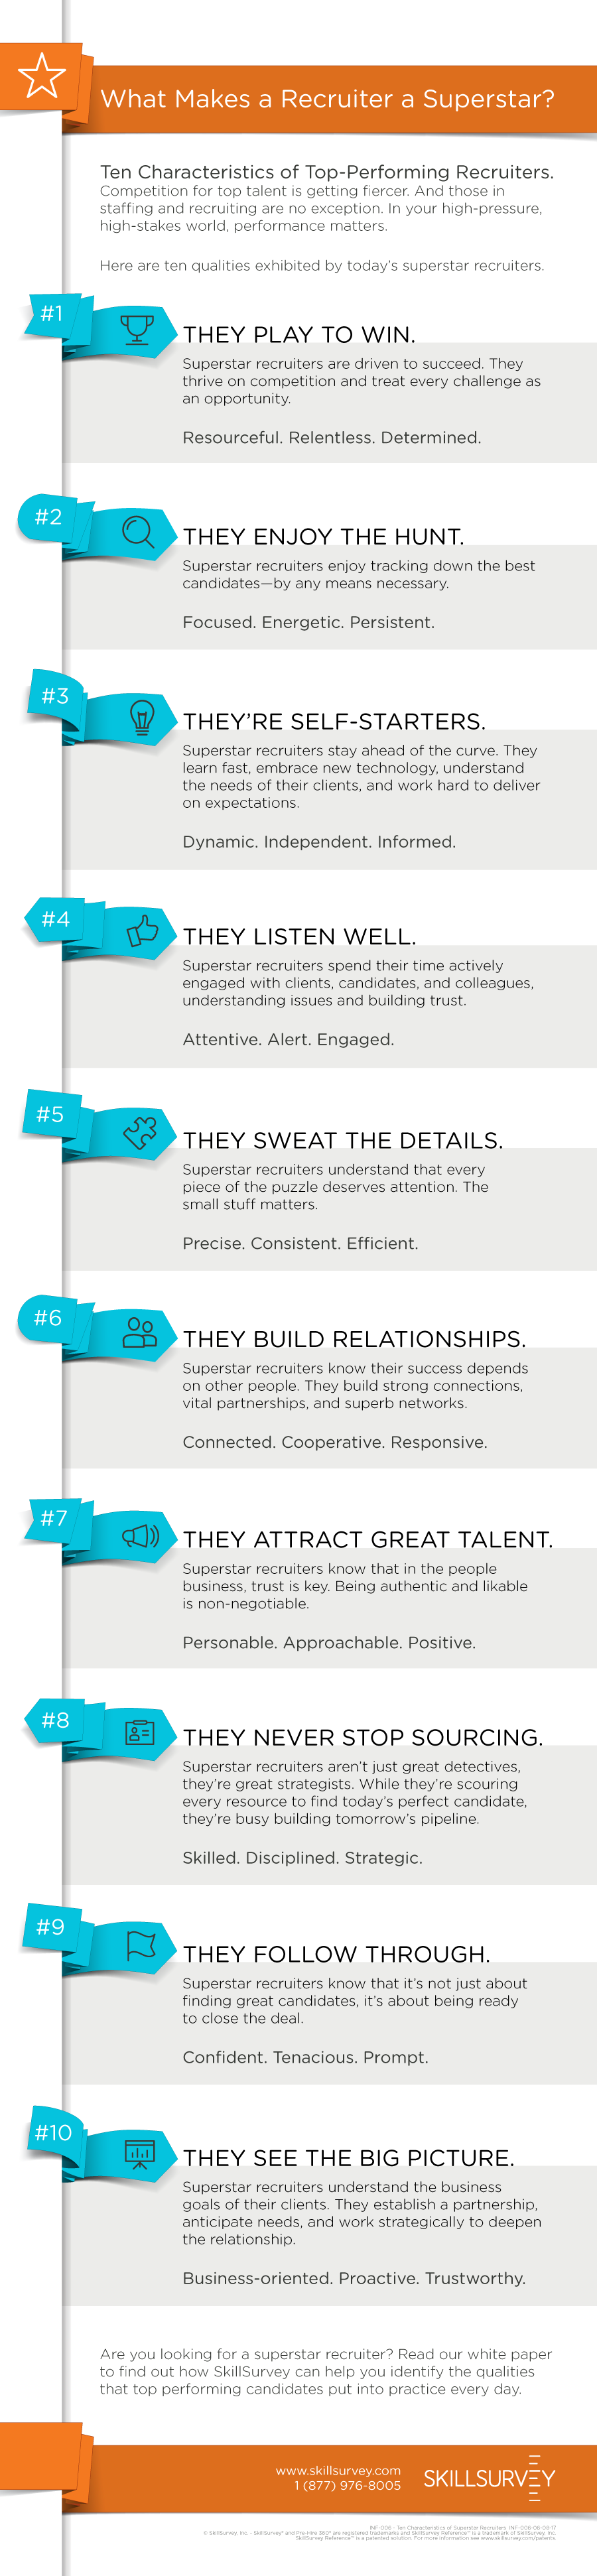 INF-006-Ten-Characteristics-of-Superstar-Recruiters.png